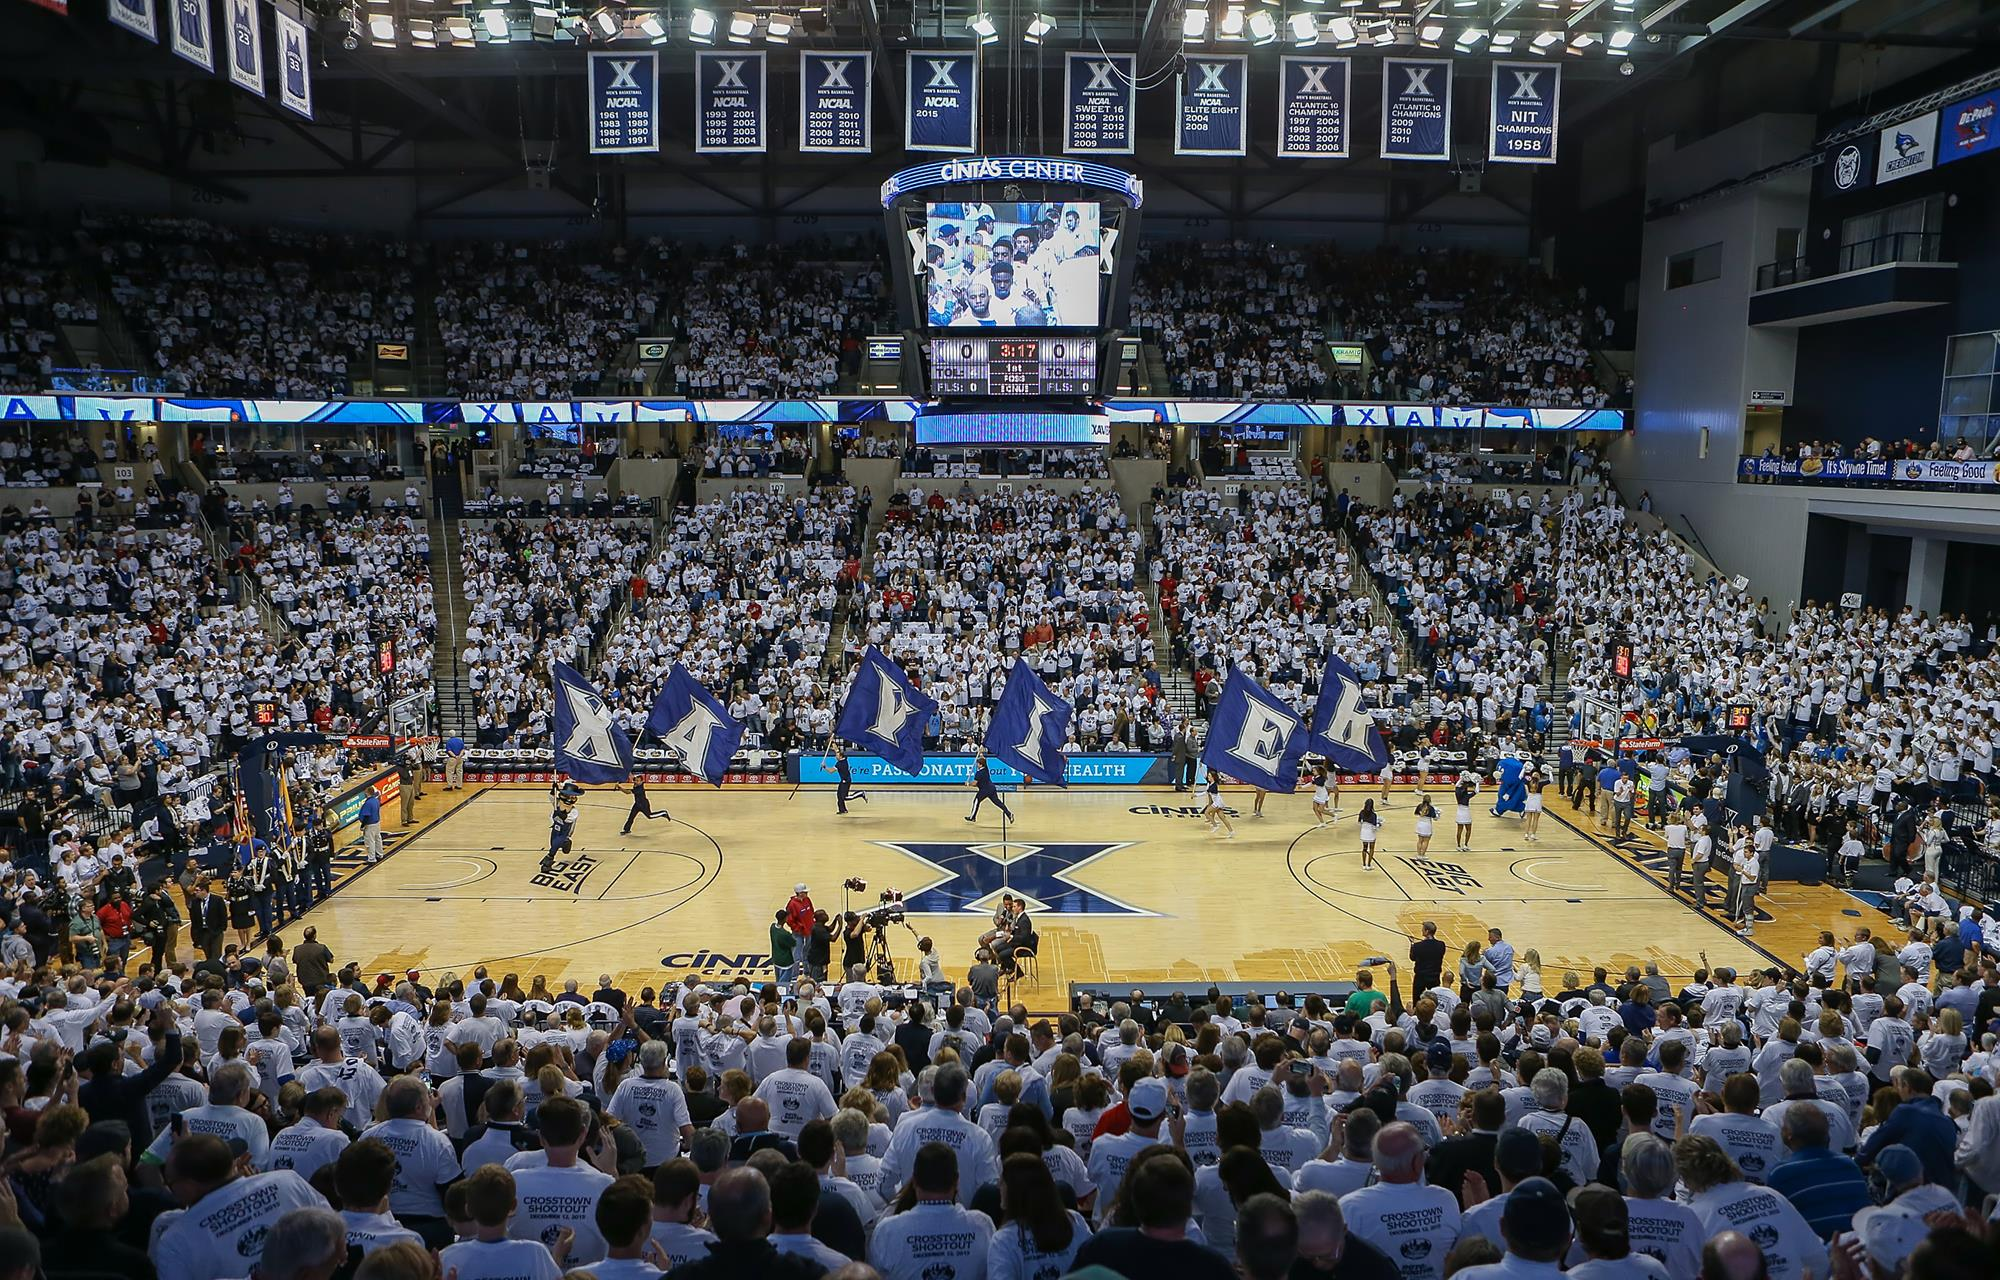 Xavier Announces New Technology and Upgrades to Cintas Center Renovations